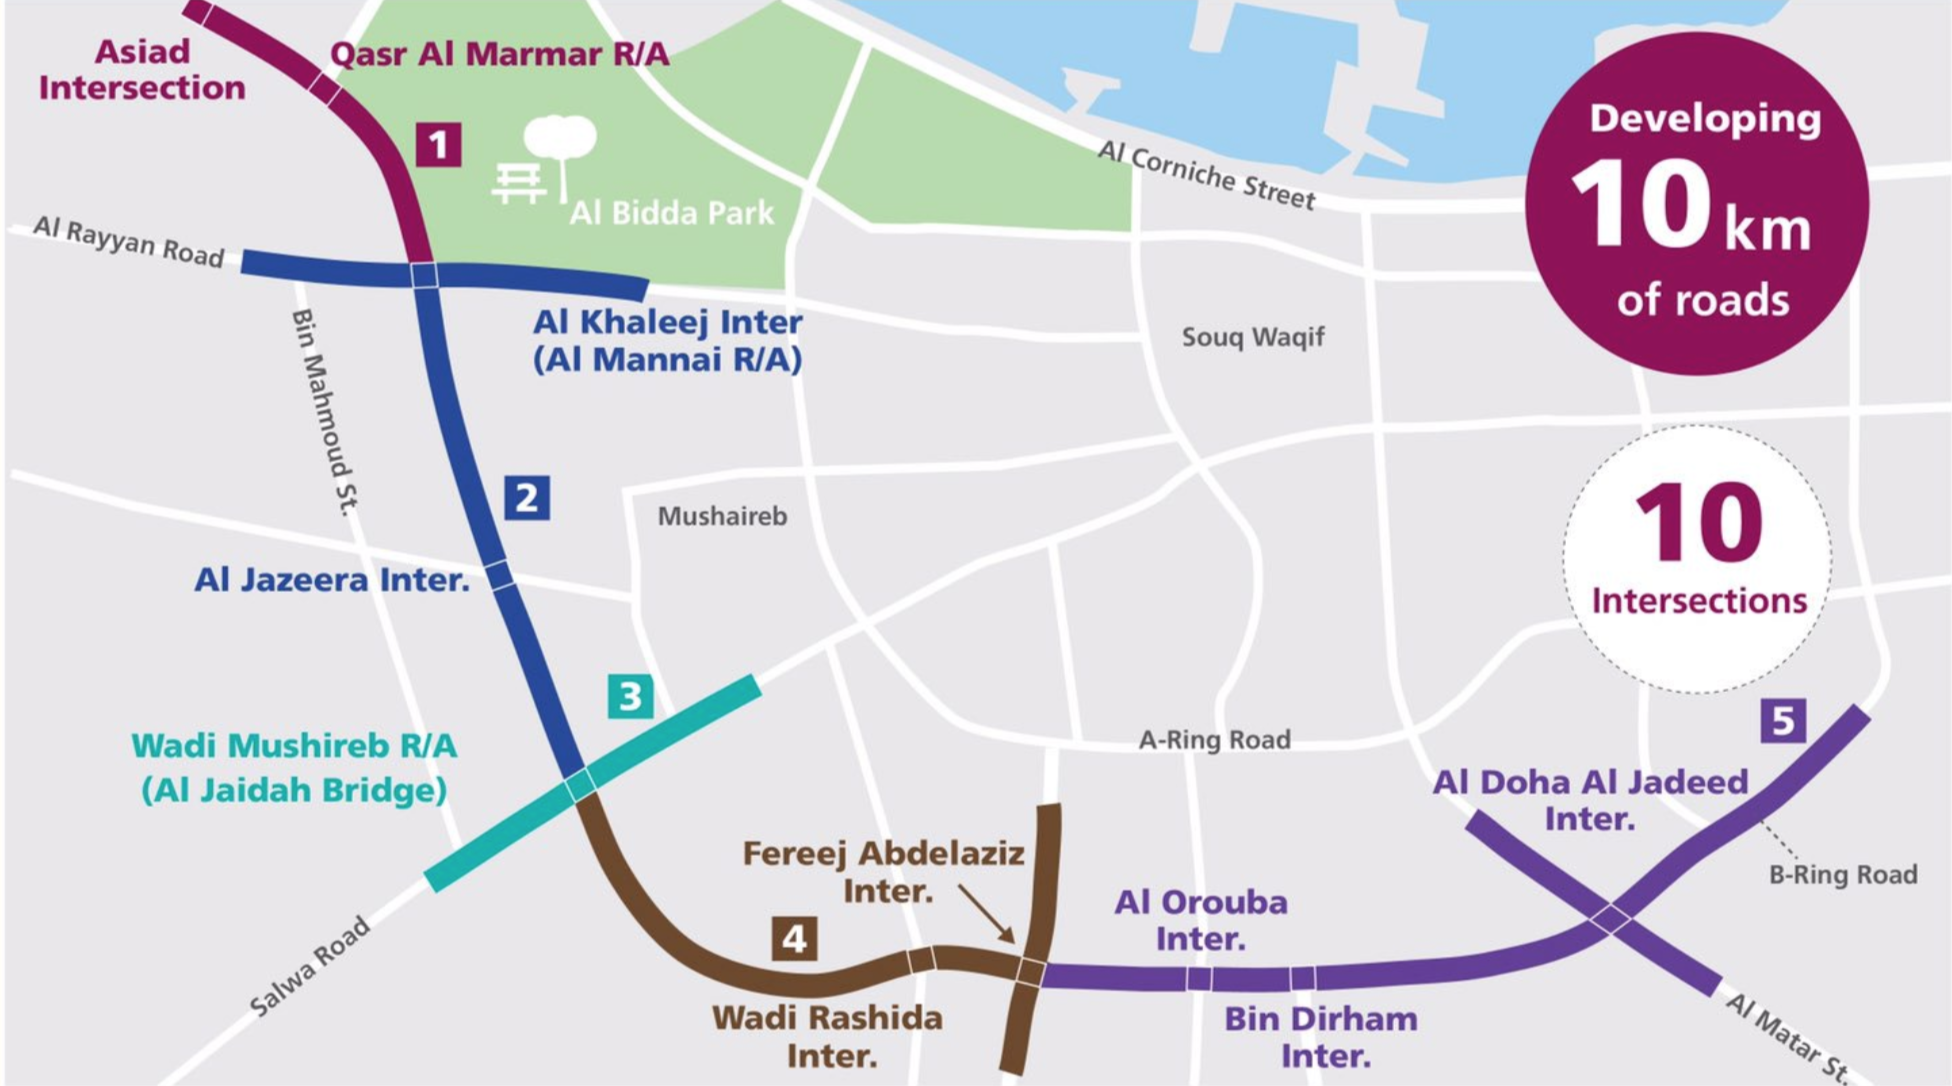 Ashghal begins the development of the C Ring Road